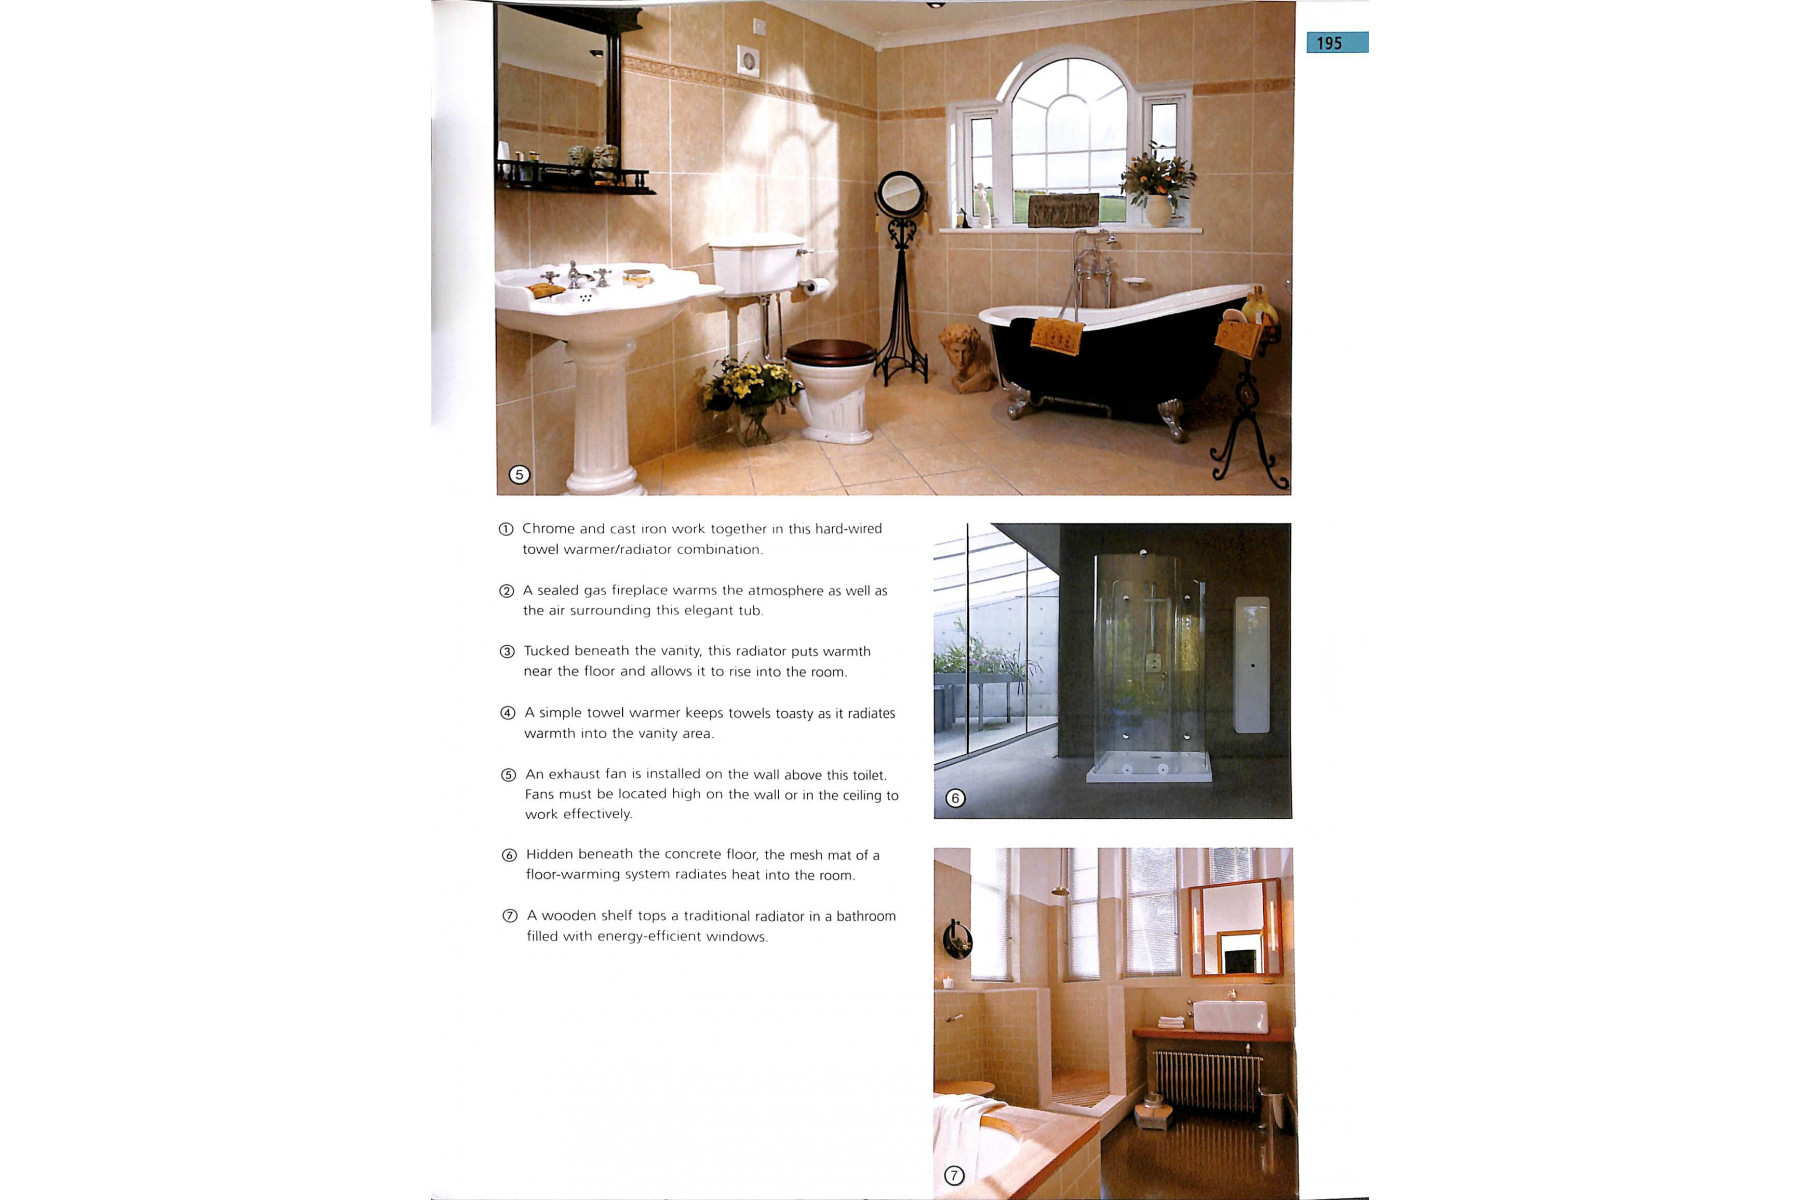 1001 Ideas for Bathrooms: The Ultimate Sourcebook